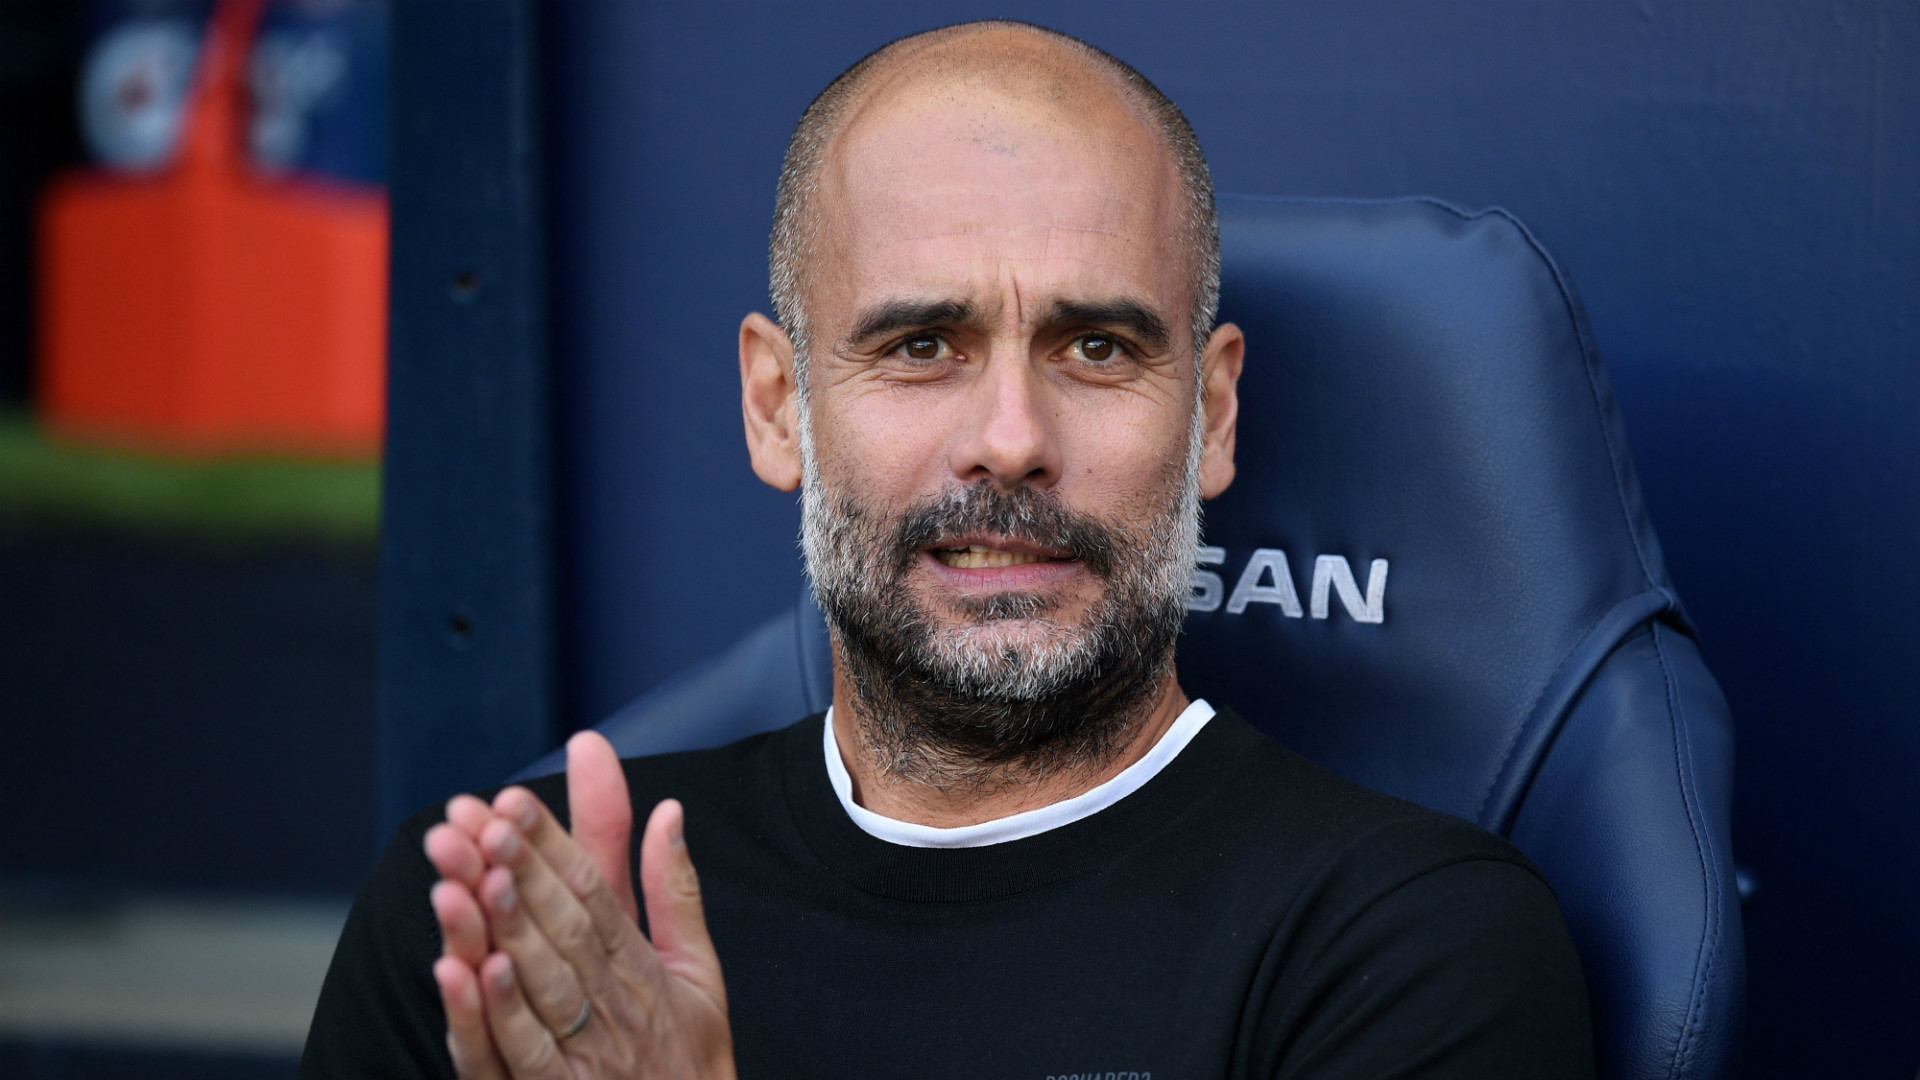 'I like VAR' - Guardiola says he supports system which 'brings justice' despite Man City disappointments